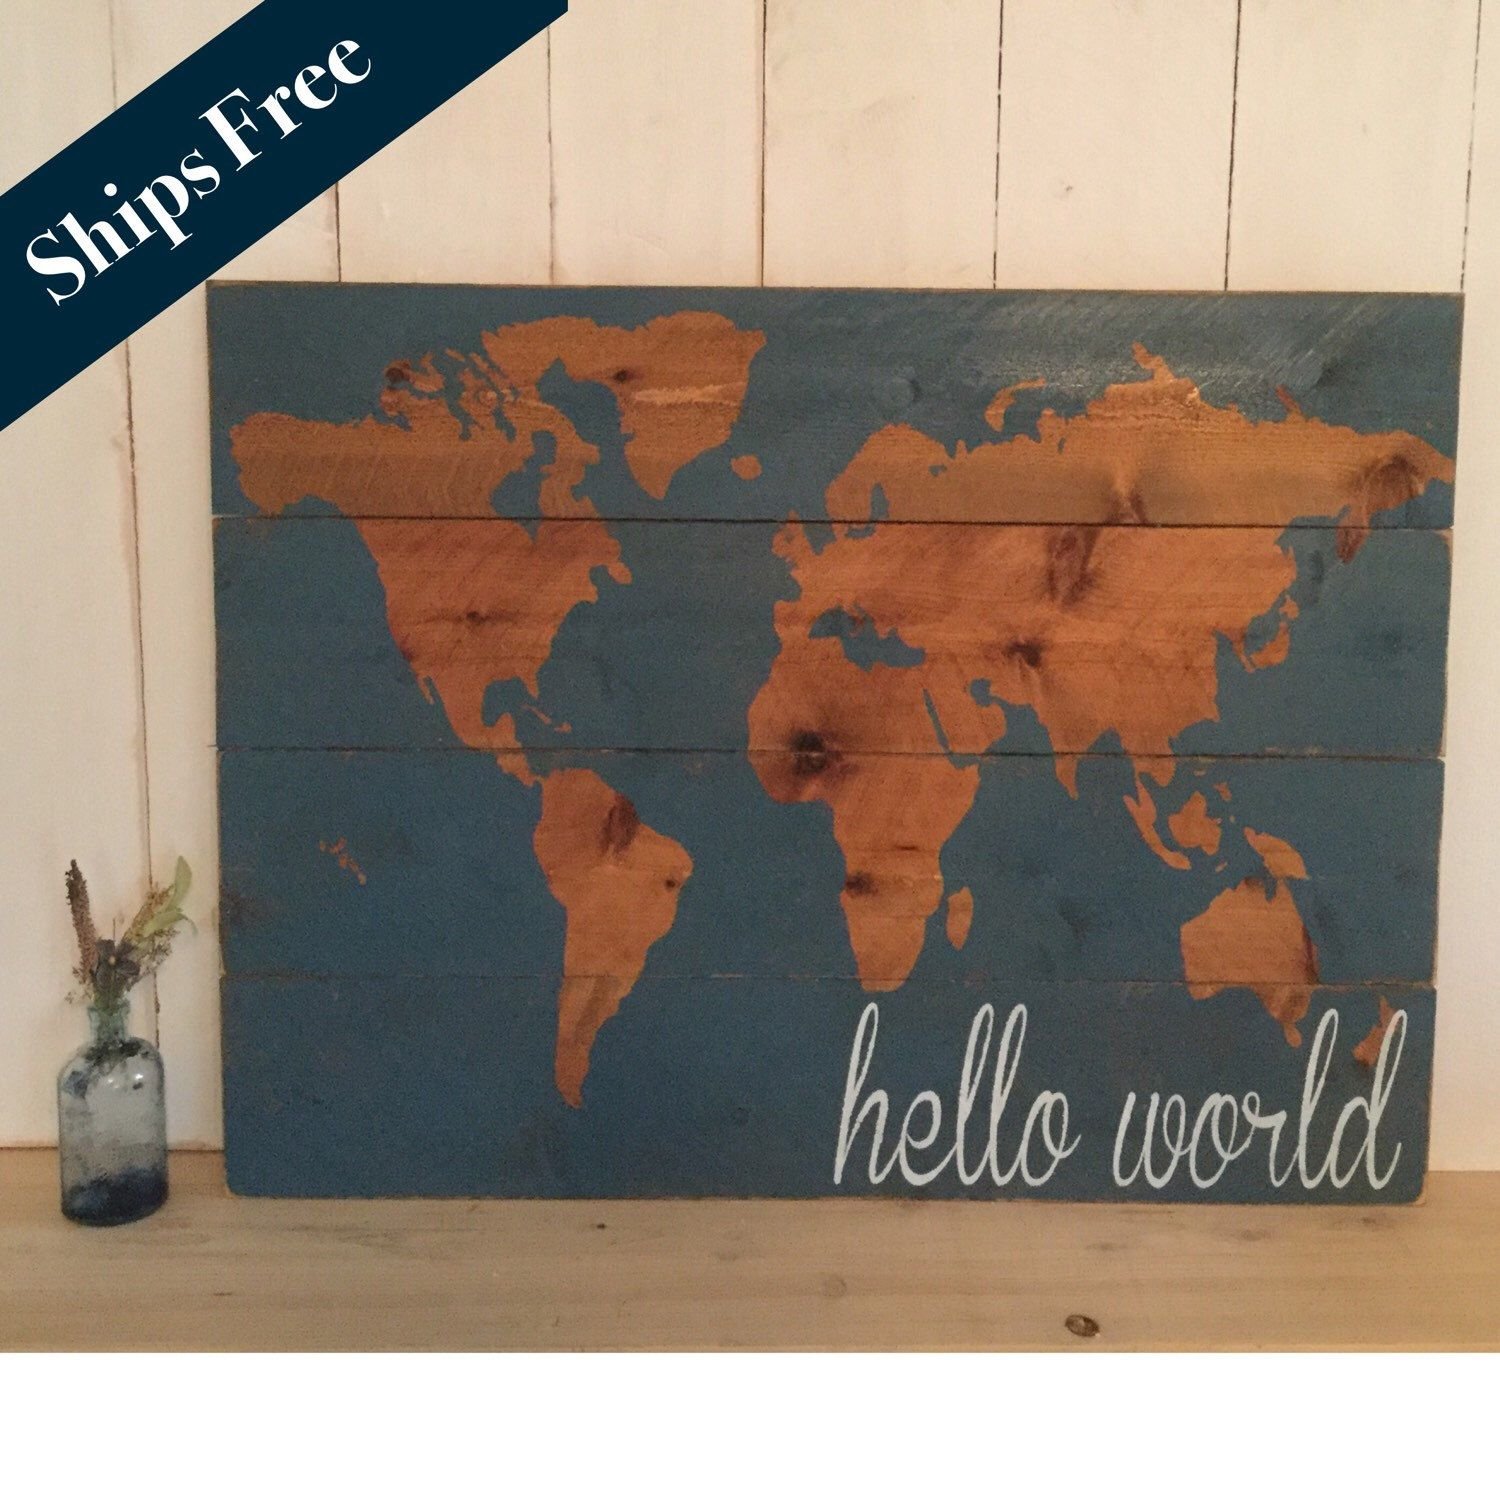 A personal favorite from my etsy shop httpsetsylisting hello world nursery decor map nursery wall art wooden map rustic world map wooden nursery map map wall hanging gift for baby gumiabroncs Images